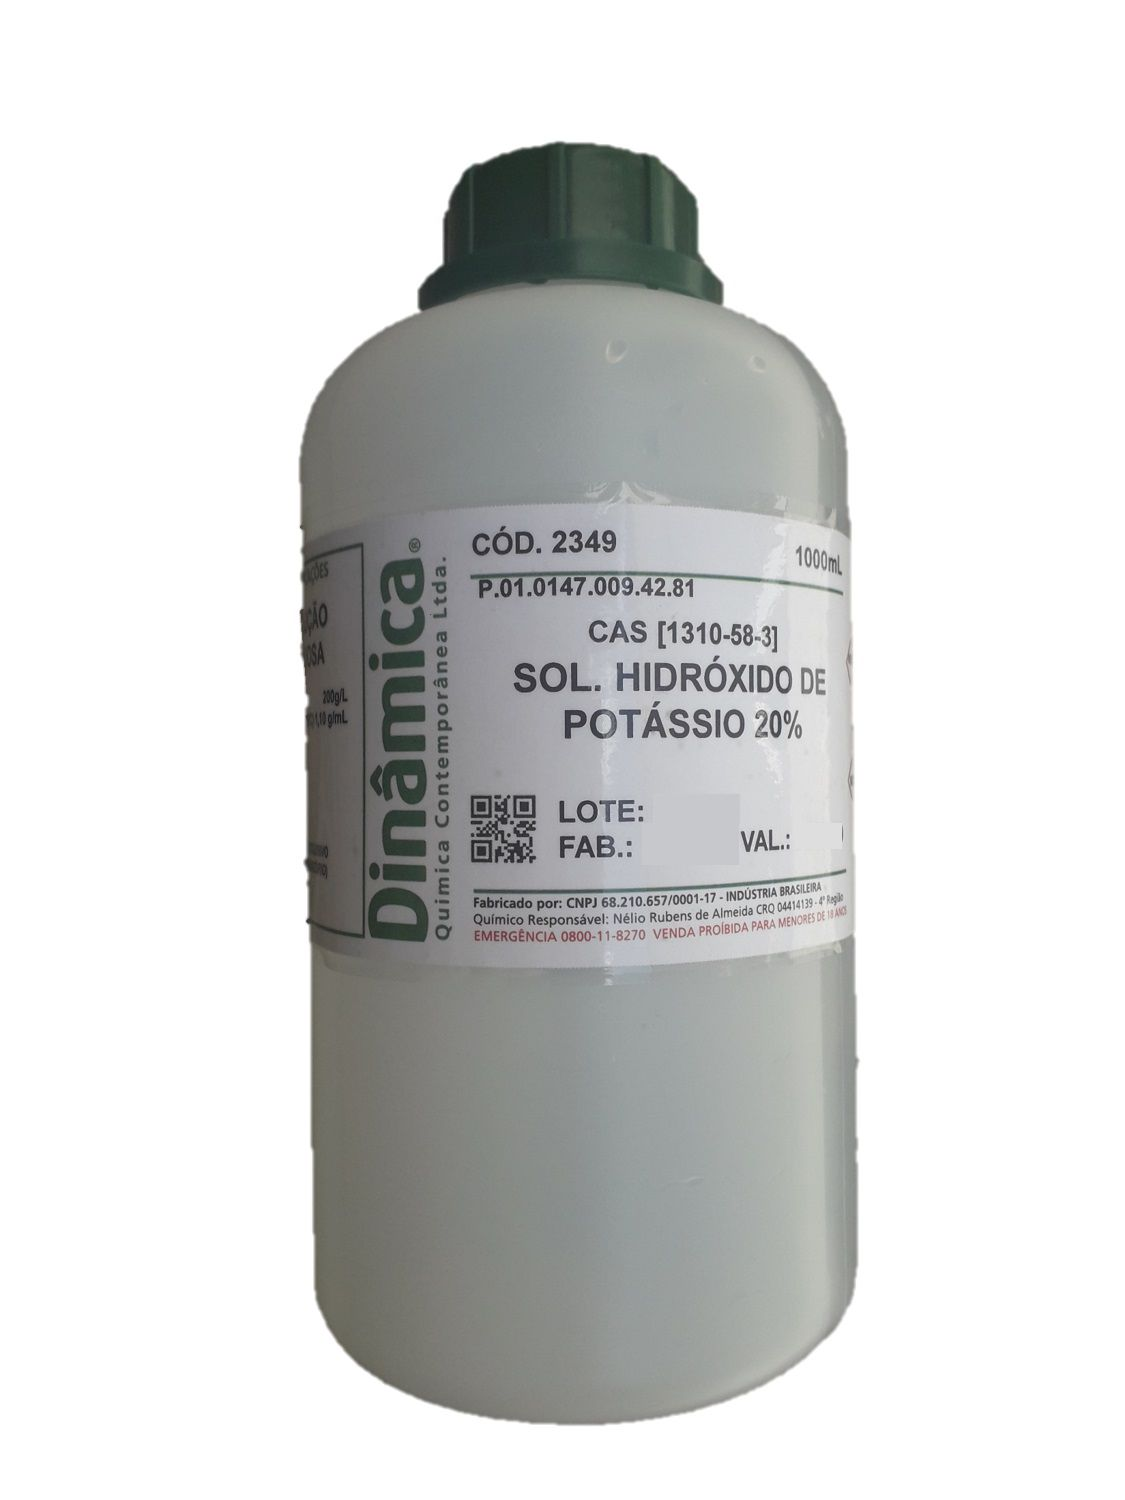 SOL. HIDROXIDO DE POTASSIO 20% -  AQUOSA 1000ML